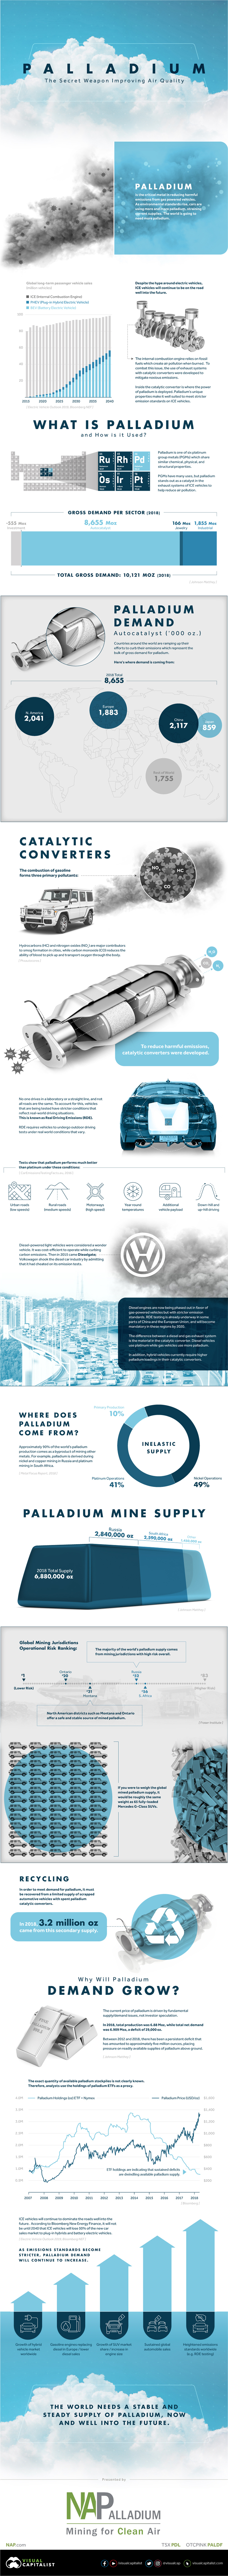 Palladium: The Anti-Pollution Weapon of the Future? - Infographic